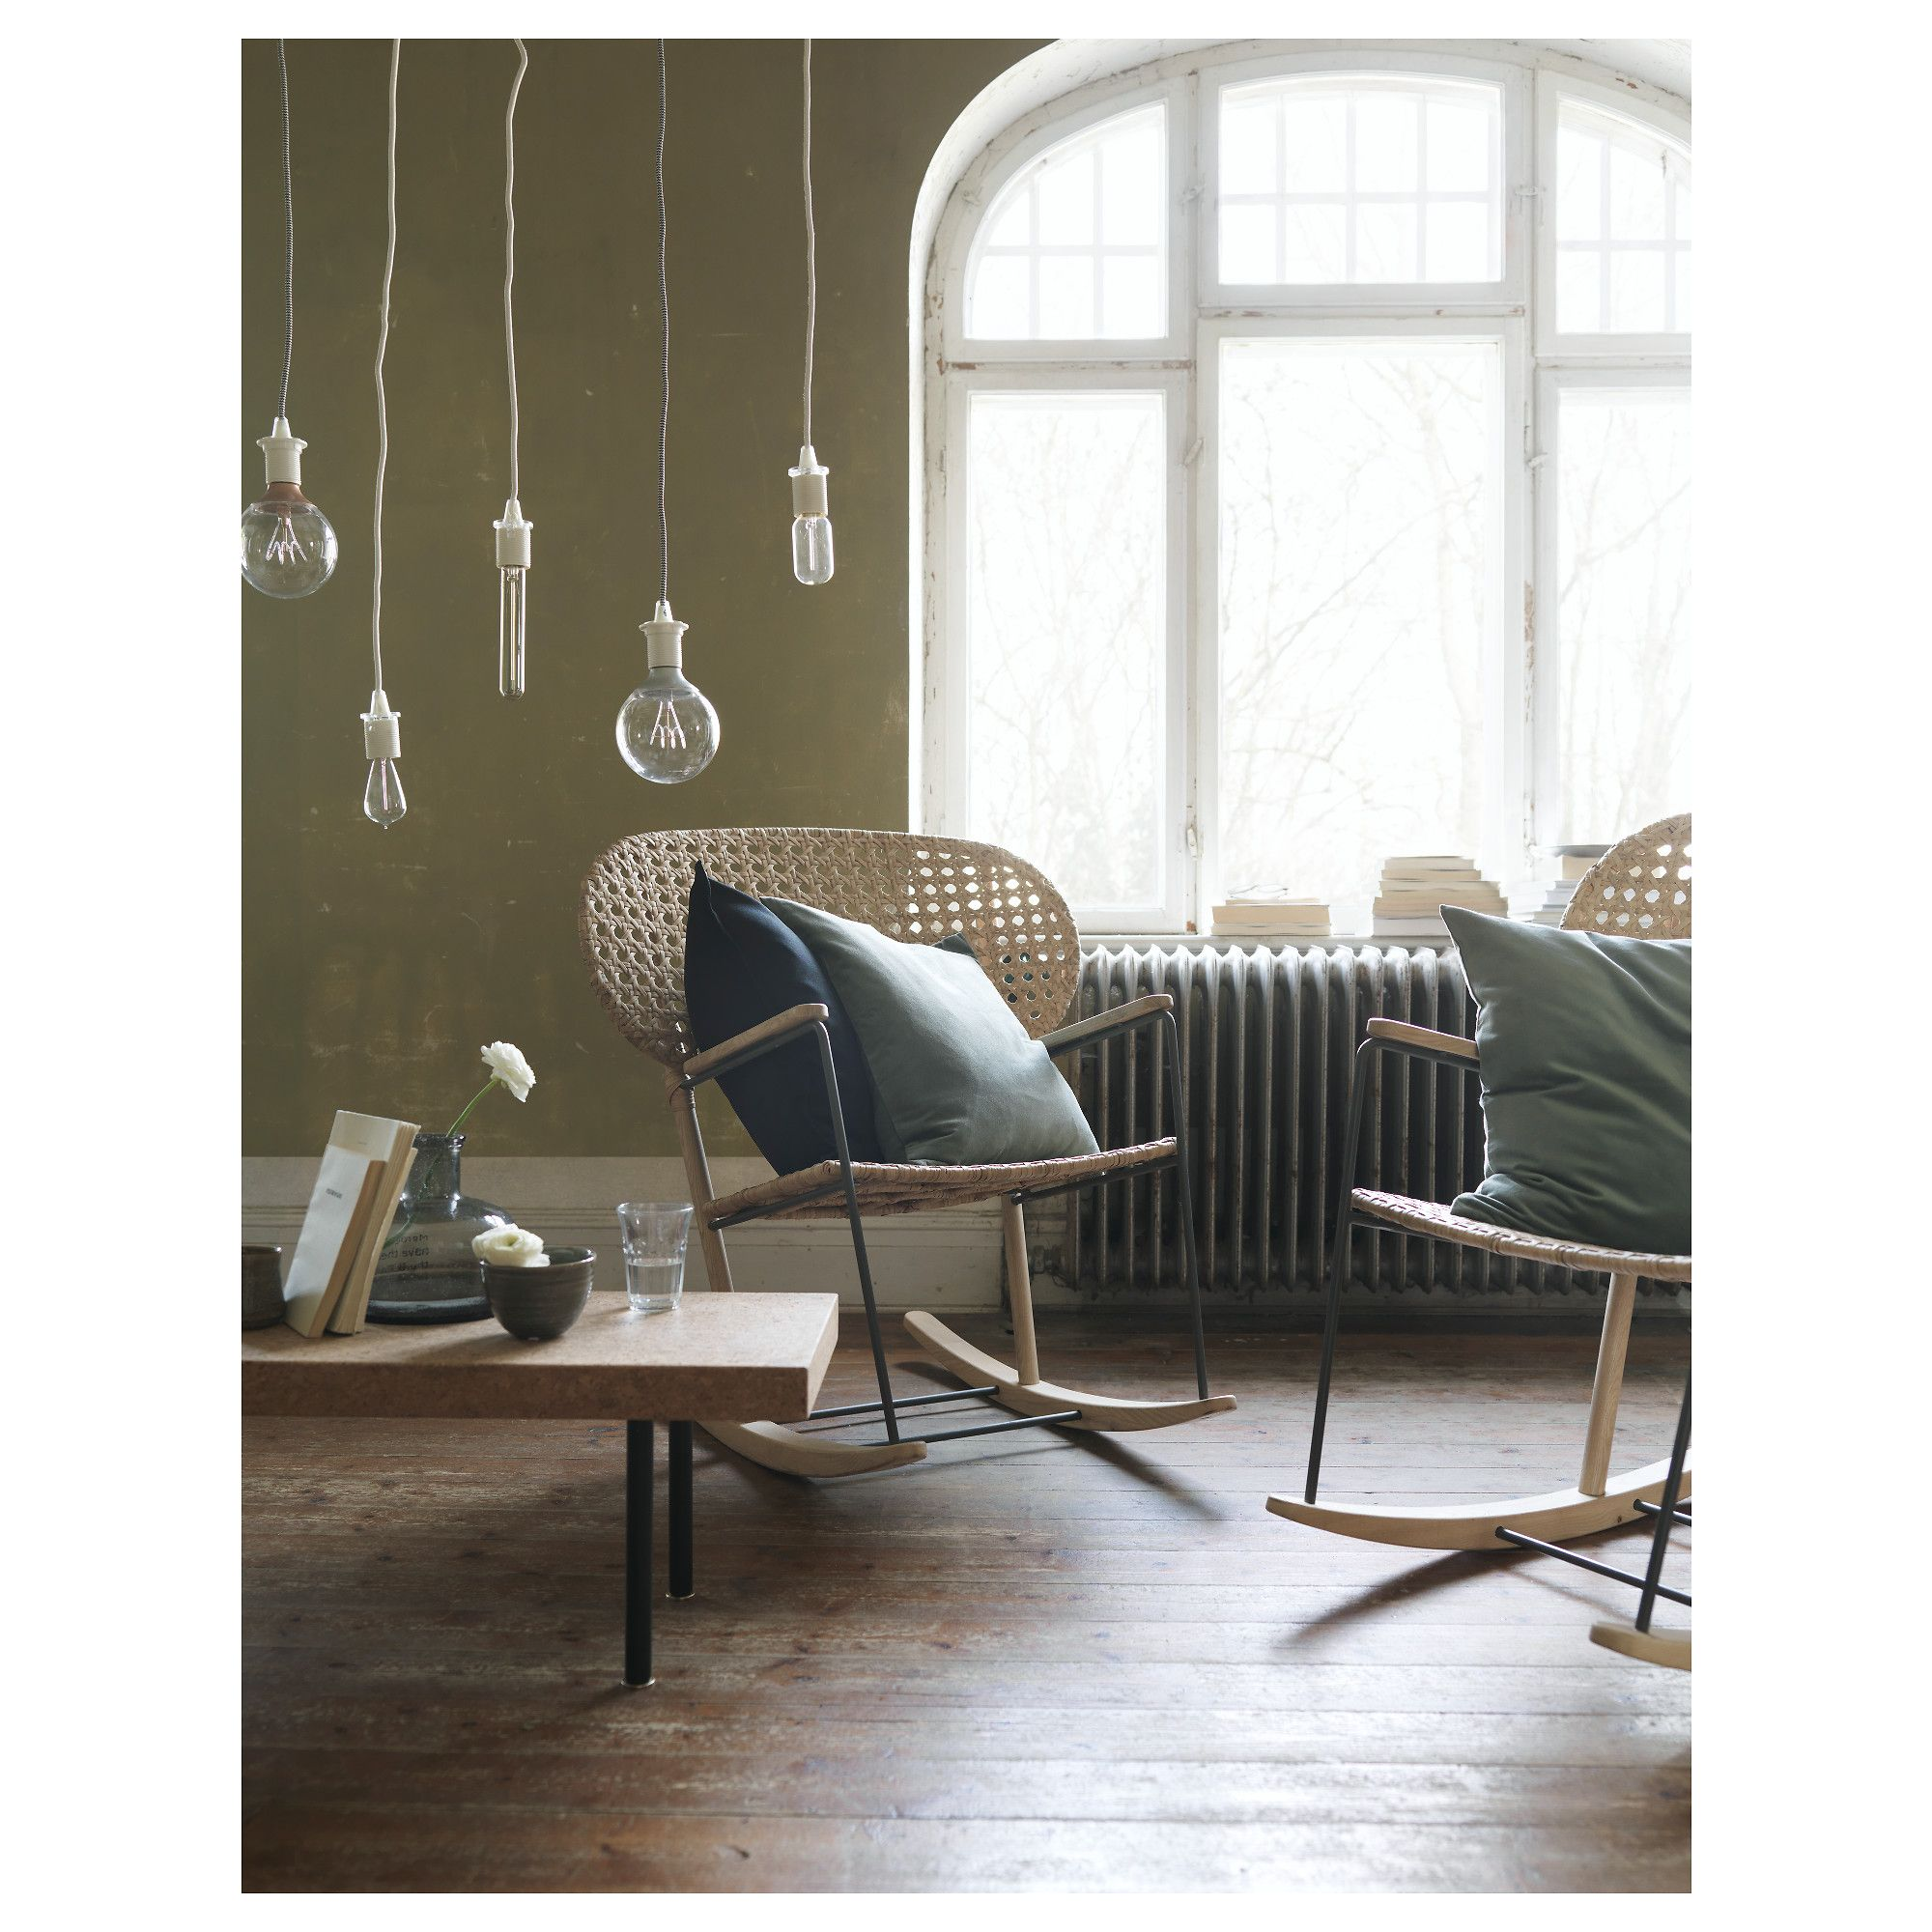 IKEA GR–NADAL rocking chair Made from rattan and ash natural